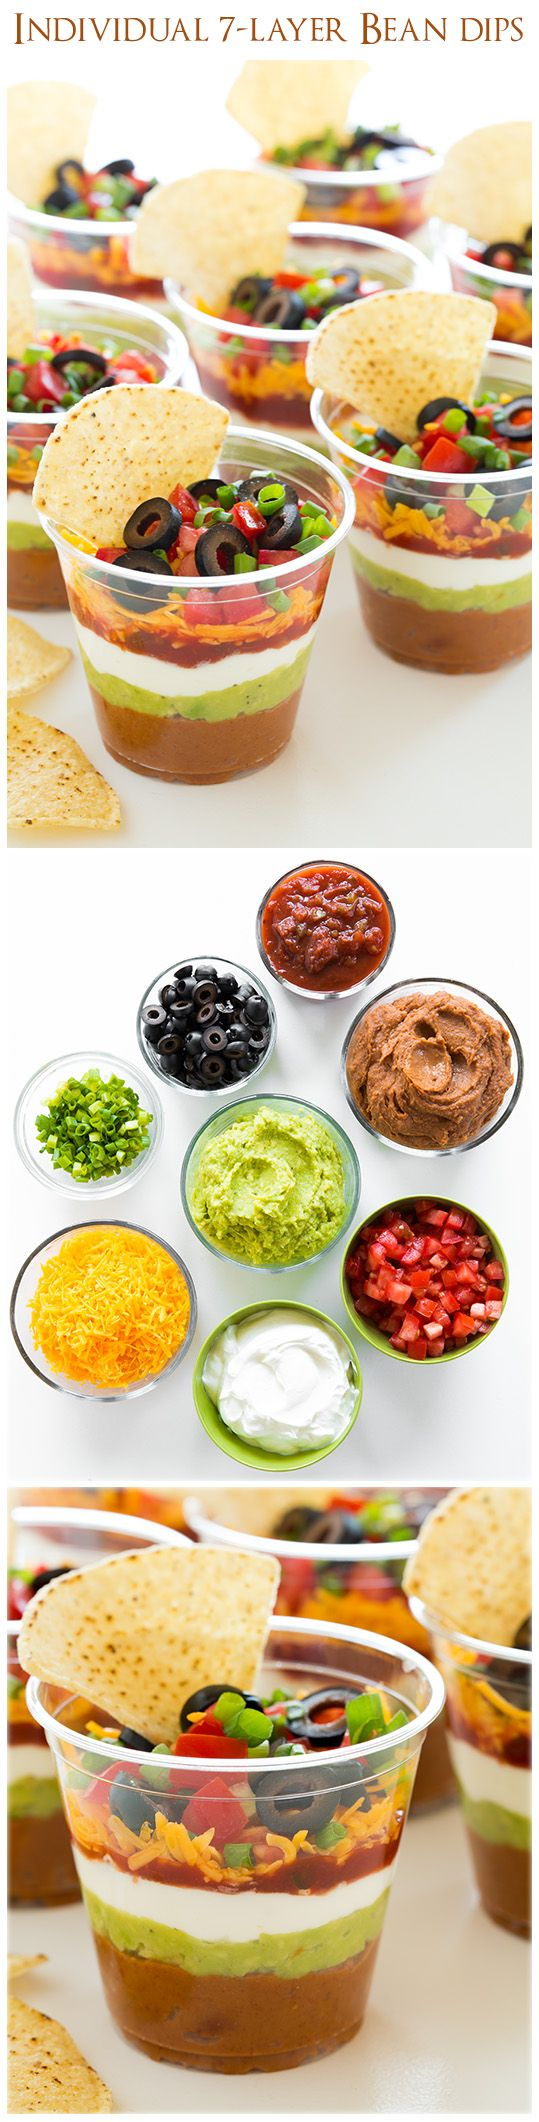 Individual 7 Layer Bean Dips